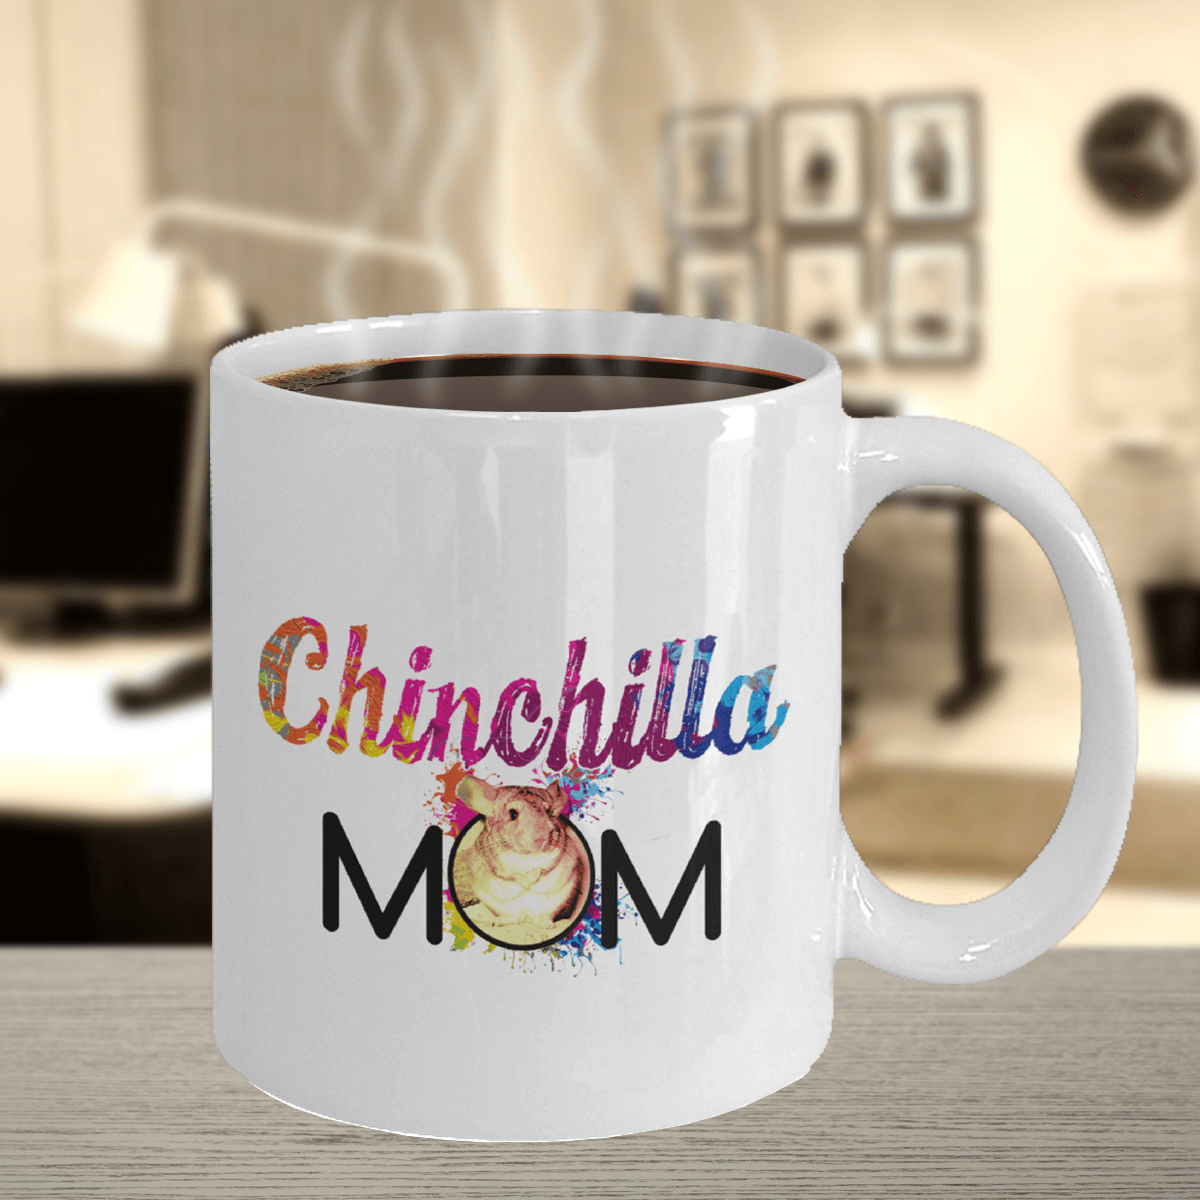 Chinchilla Mom White Ceramic Mug